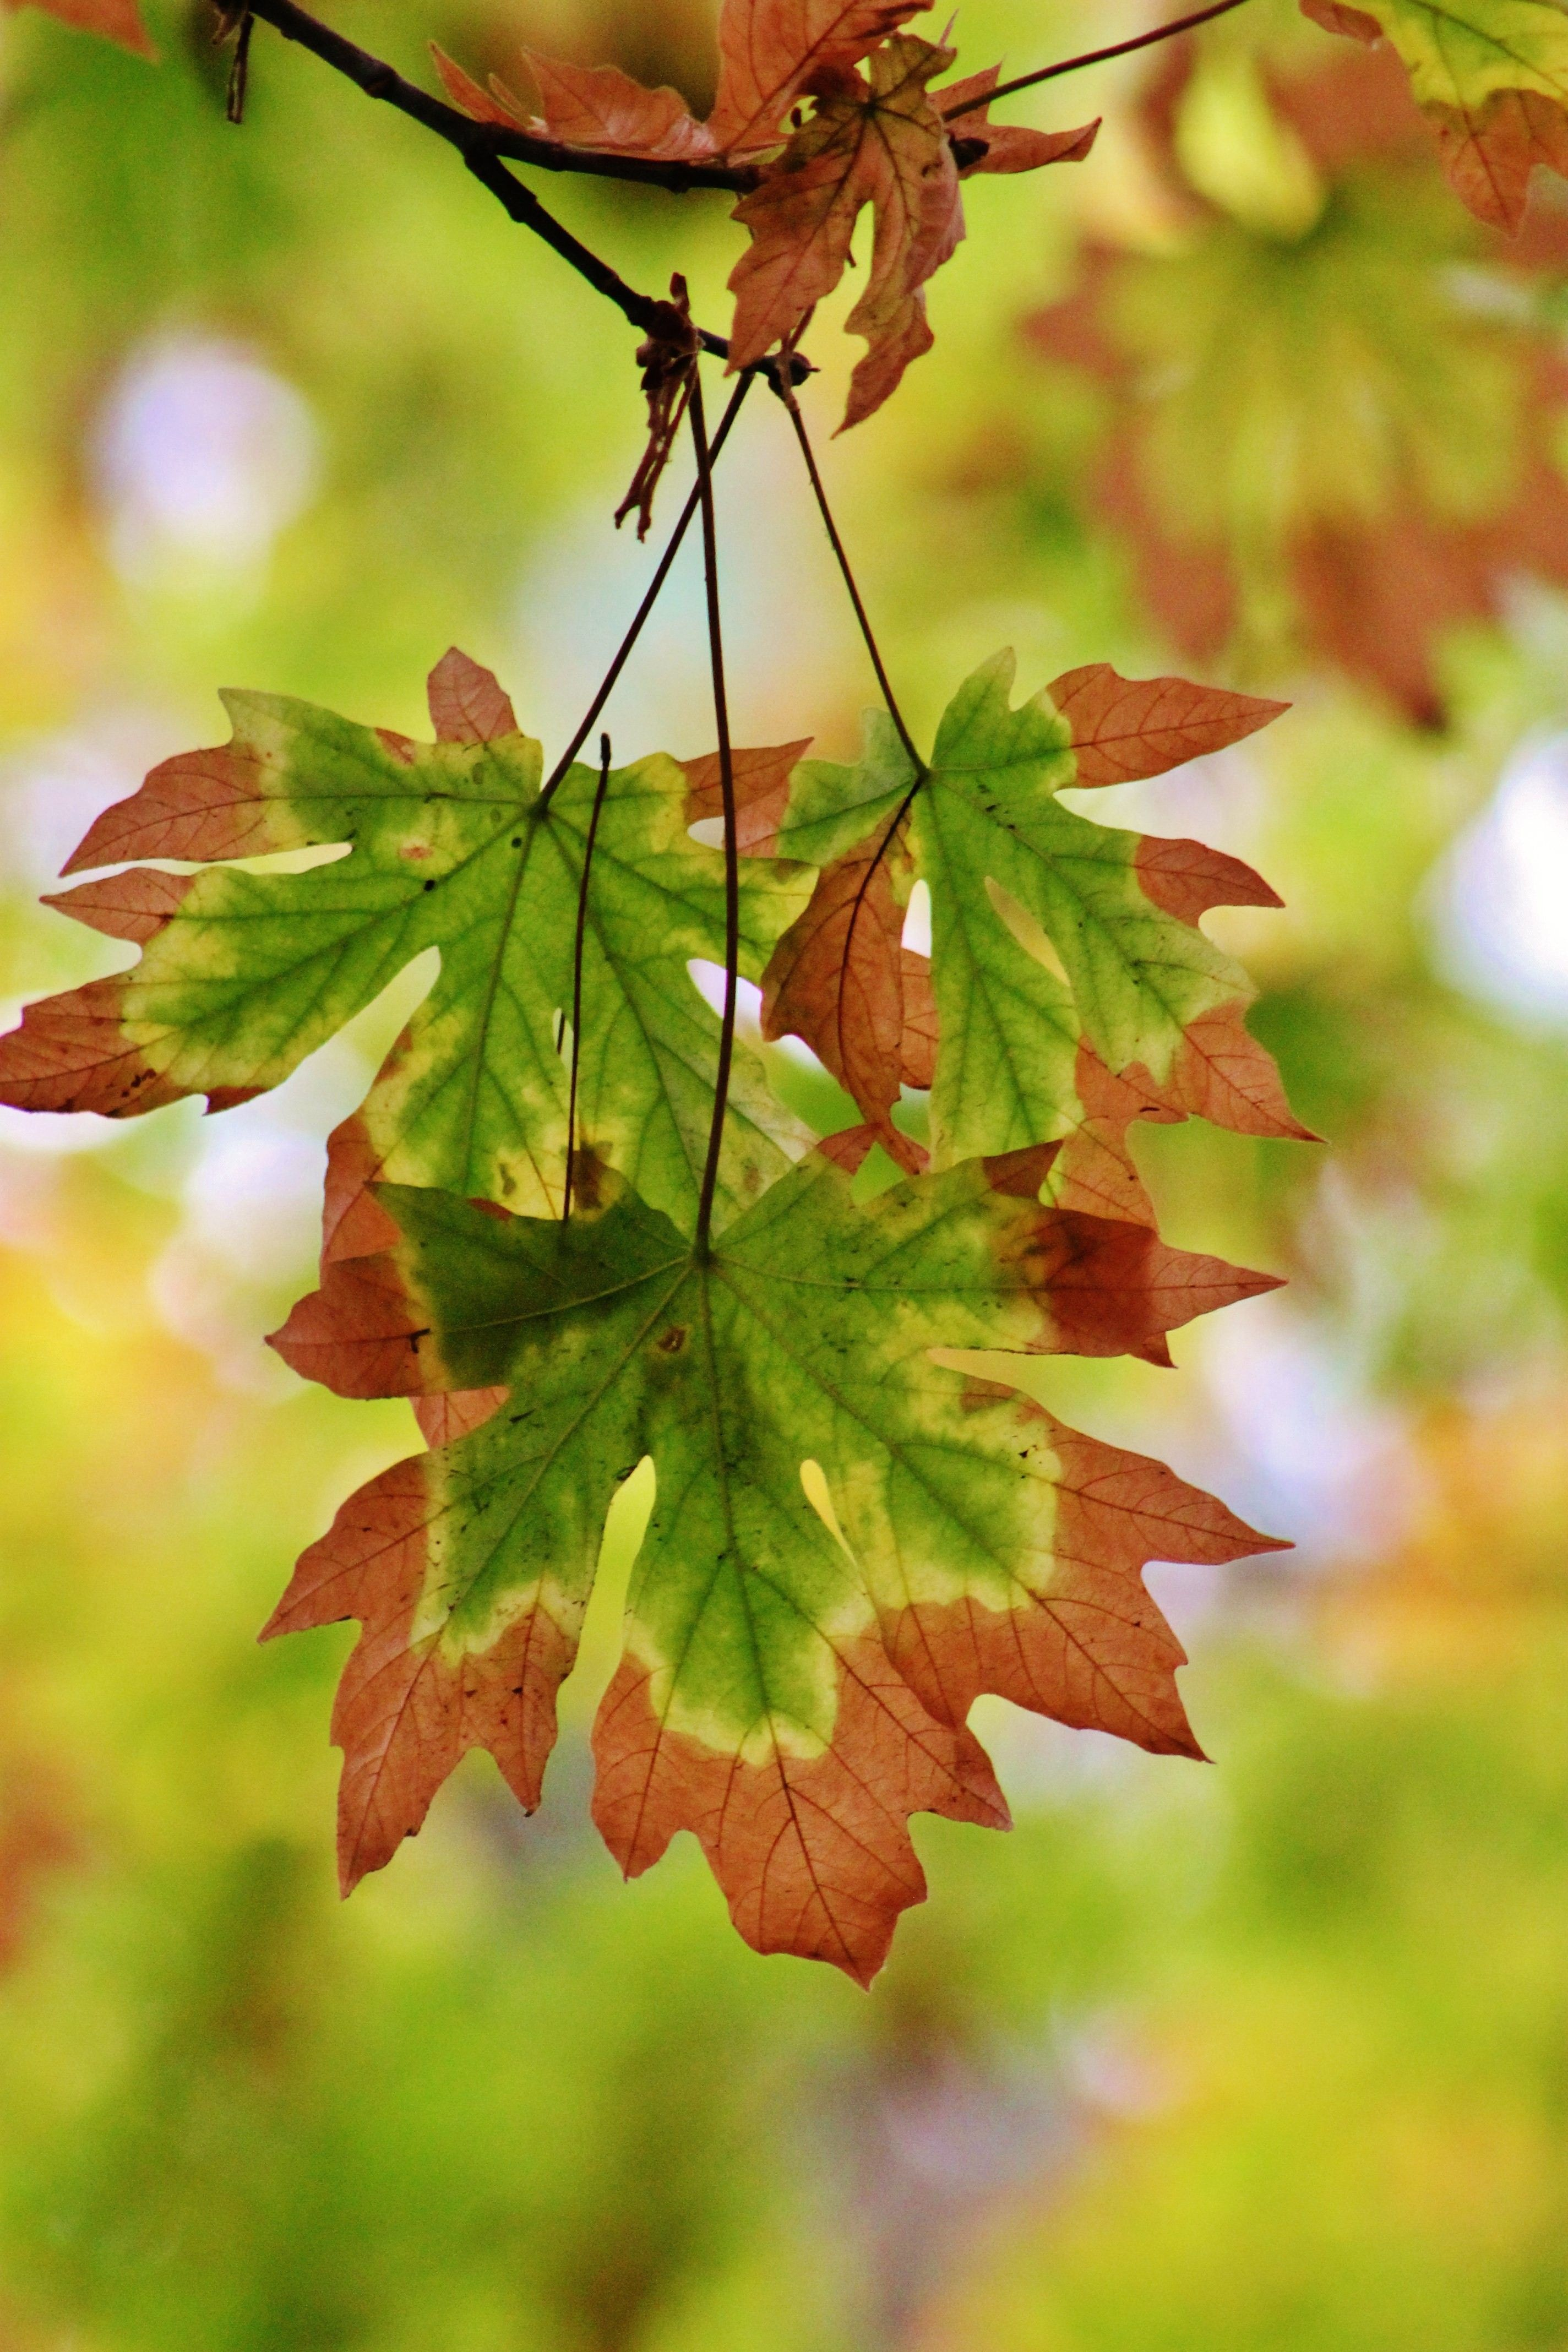 A small branch of leaves changing colors in the fall season.